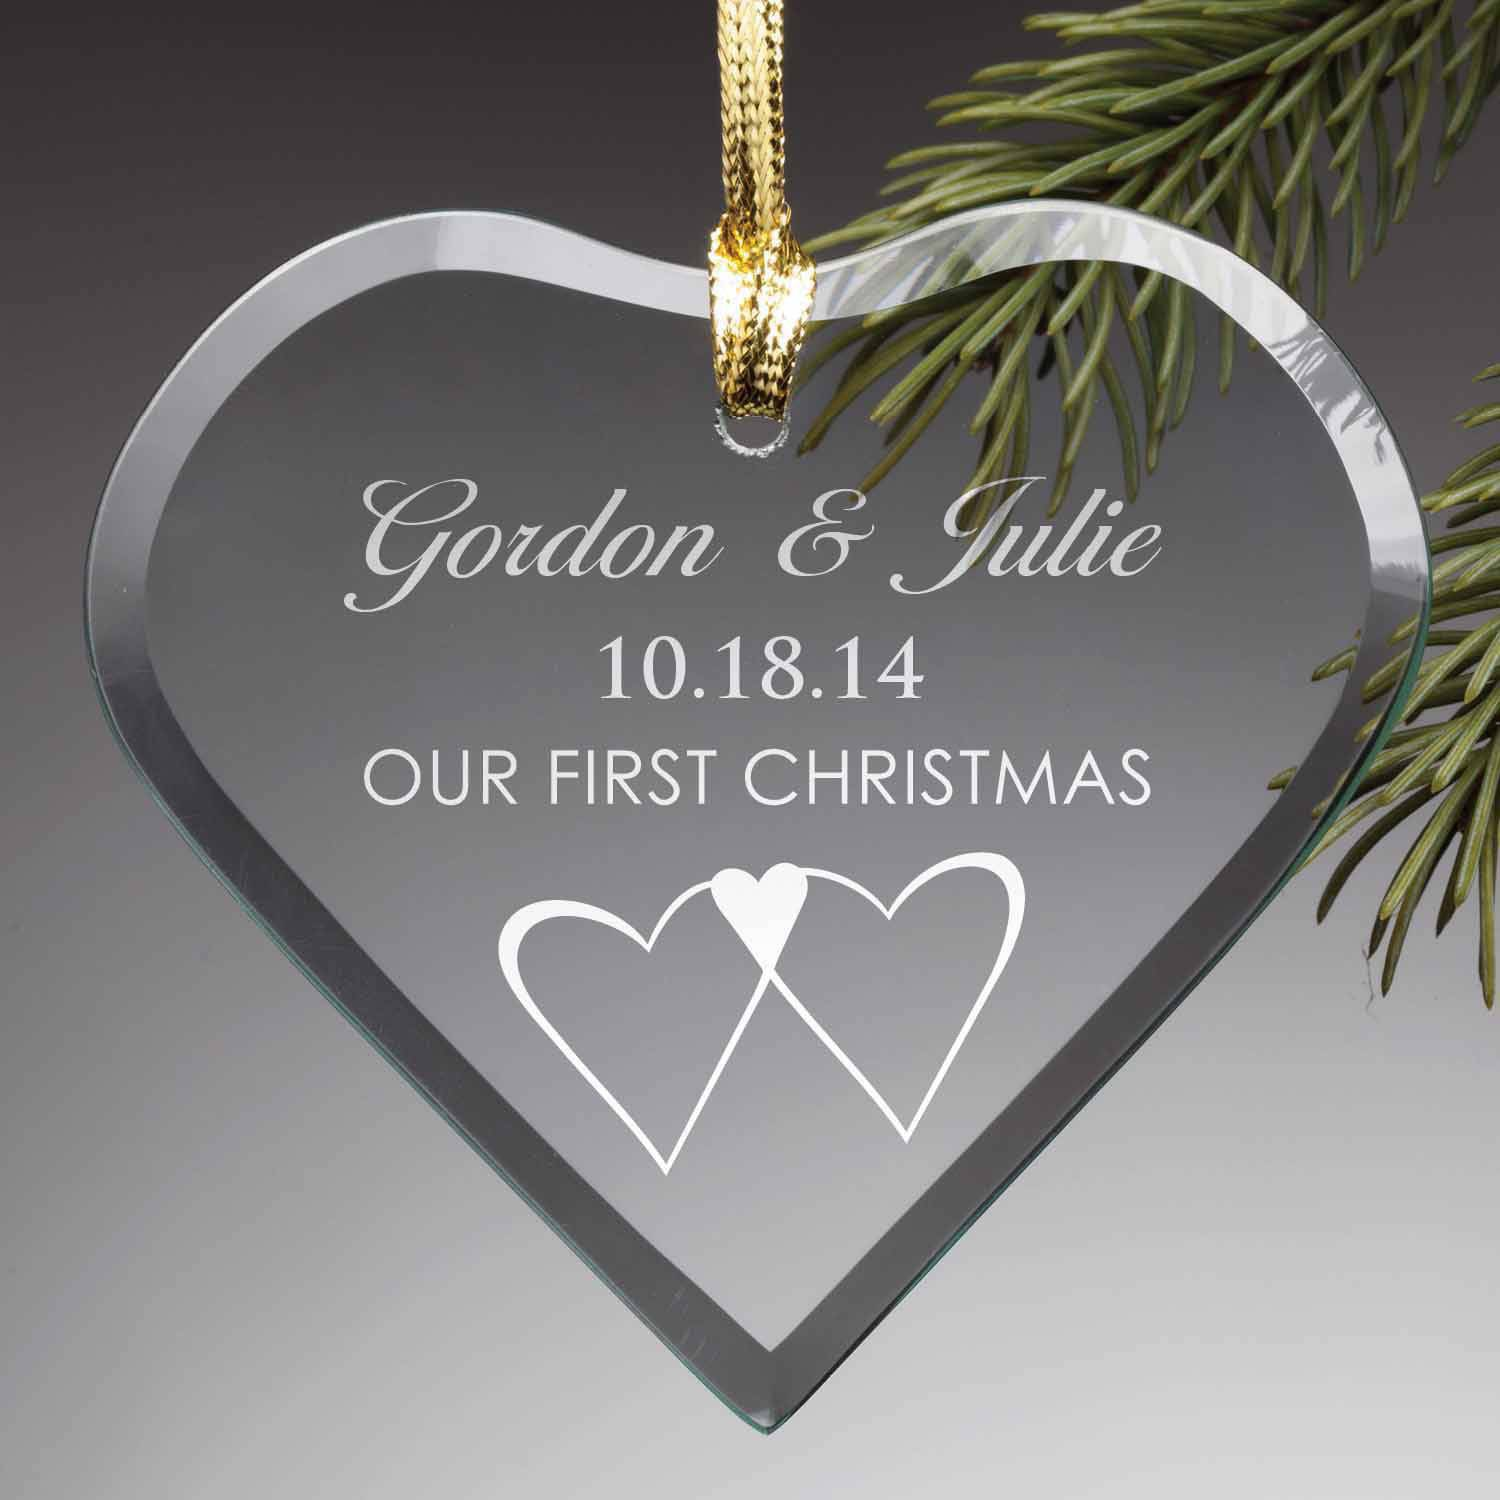 Personalized Christmas Glass Ornament - Our First